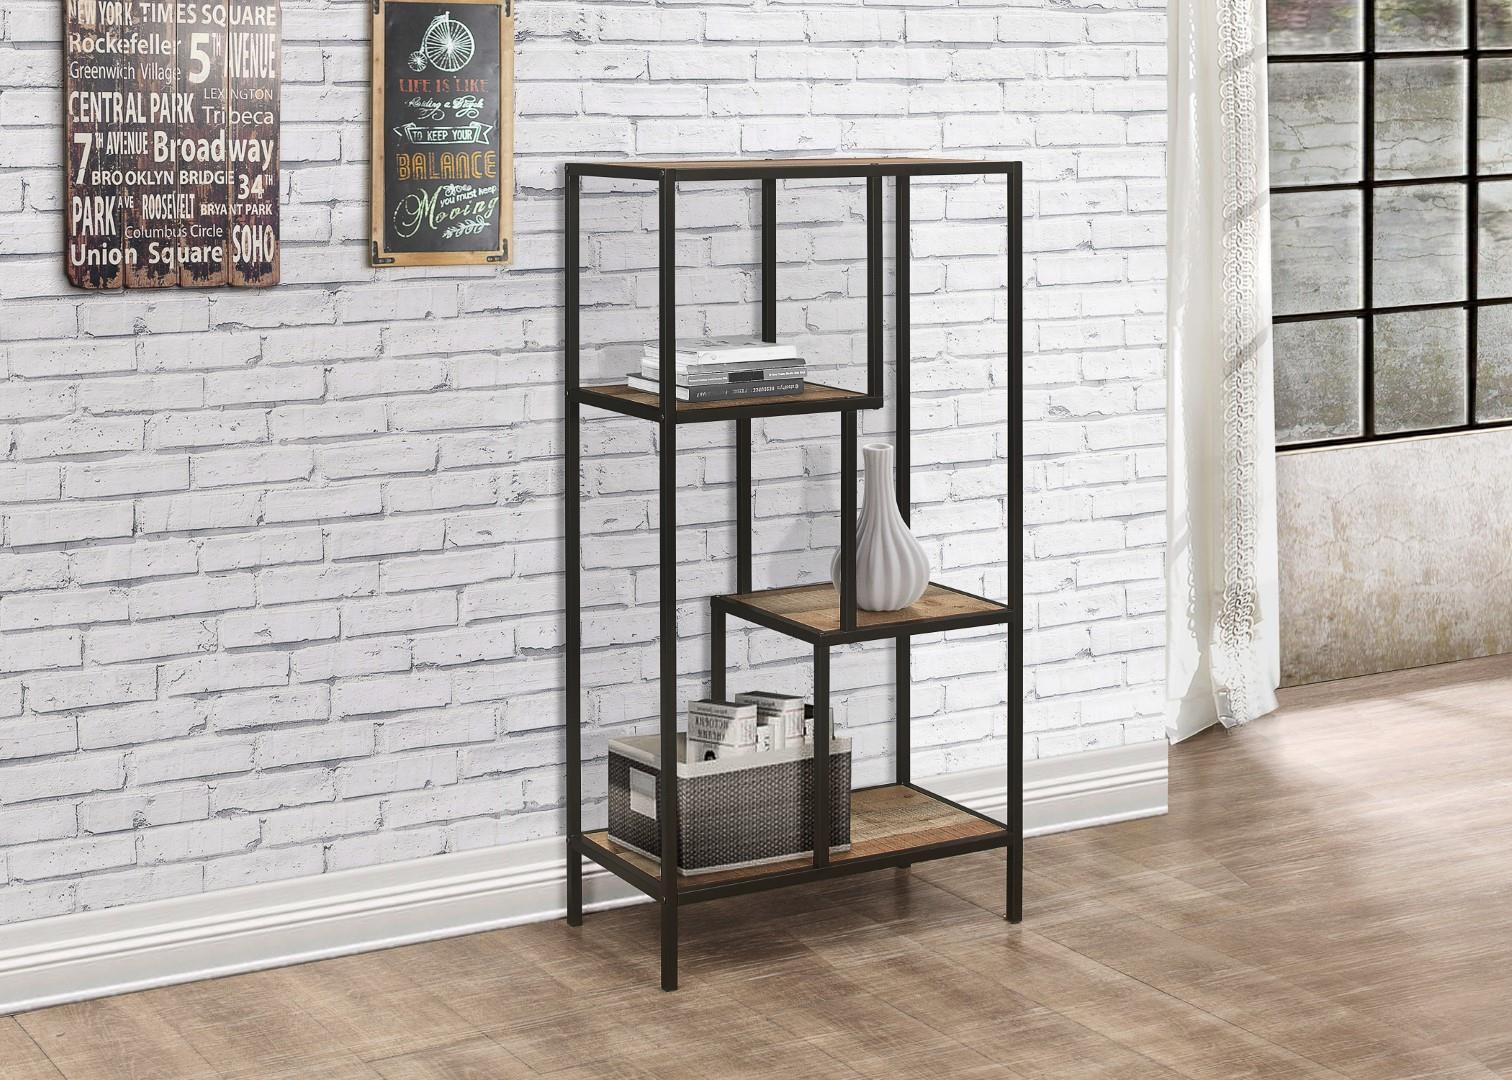 Birlea Urban Industrial Chic Medium Bookcase Shelving Unit Rustic Metal Wood